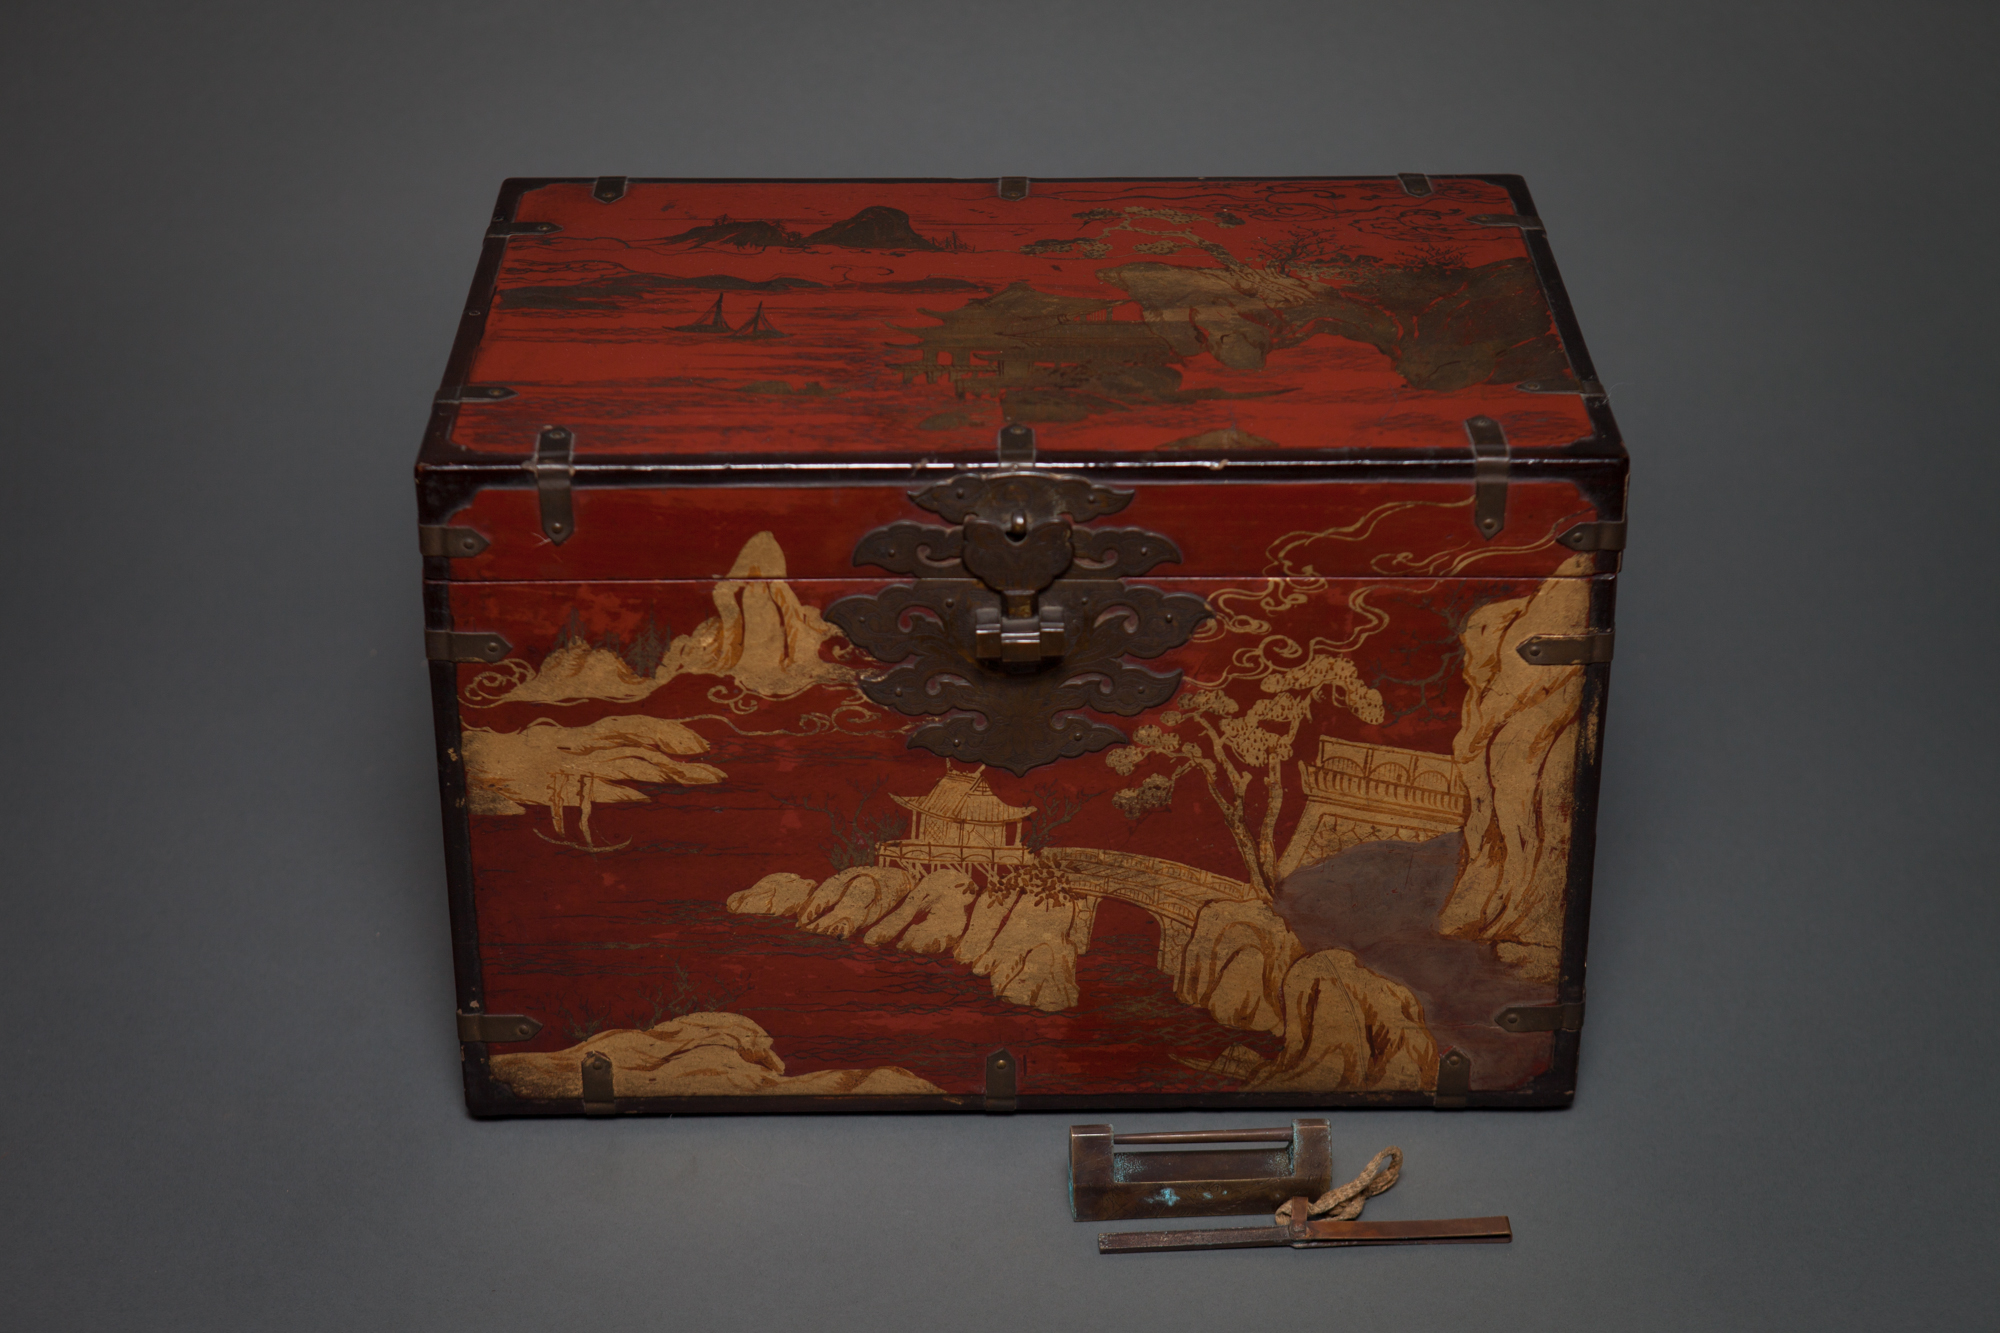 Chinese 19th Century Red Lacquer Treasure Box